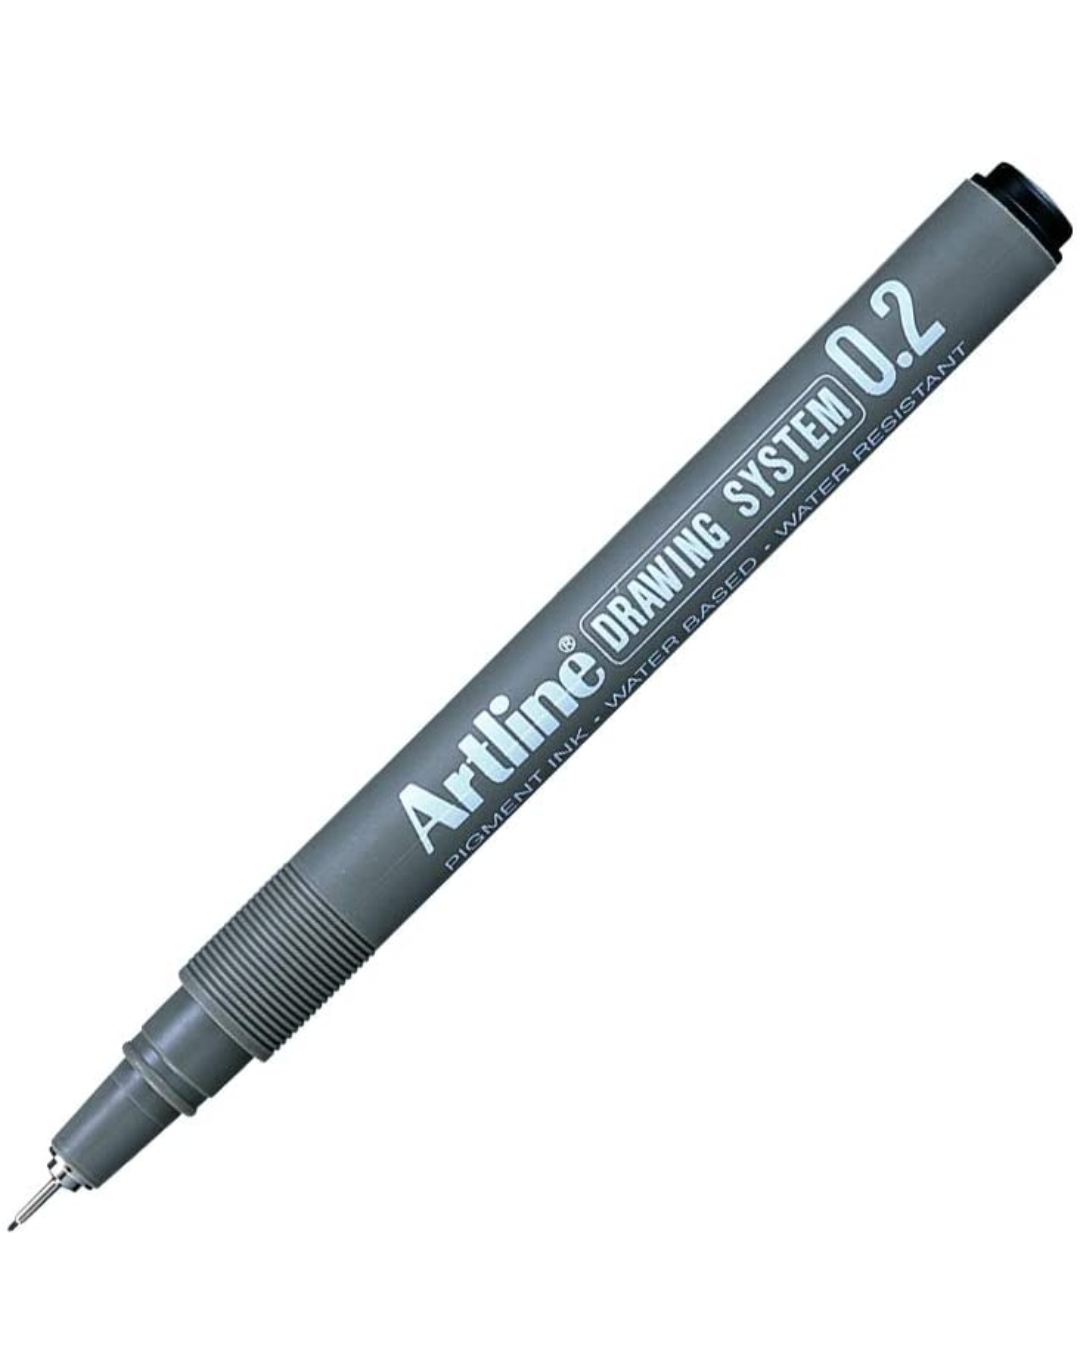 Artline Drawing System Artistic Technical Pen 0.2 mm Point Size Pack of 1